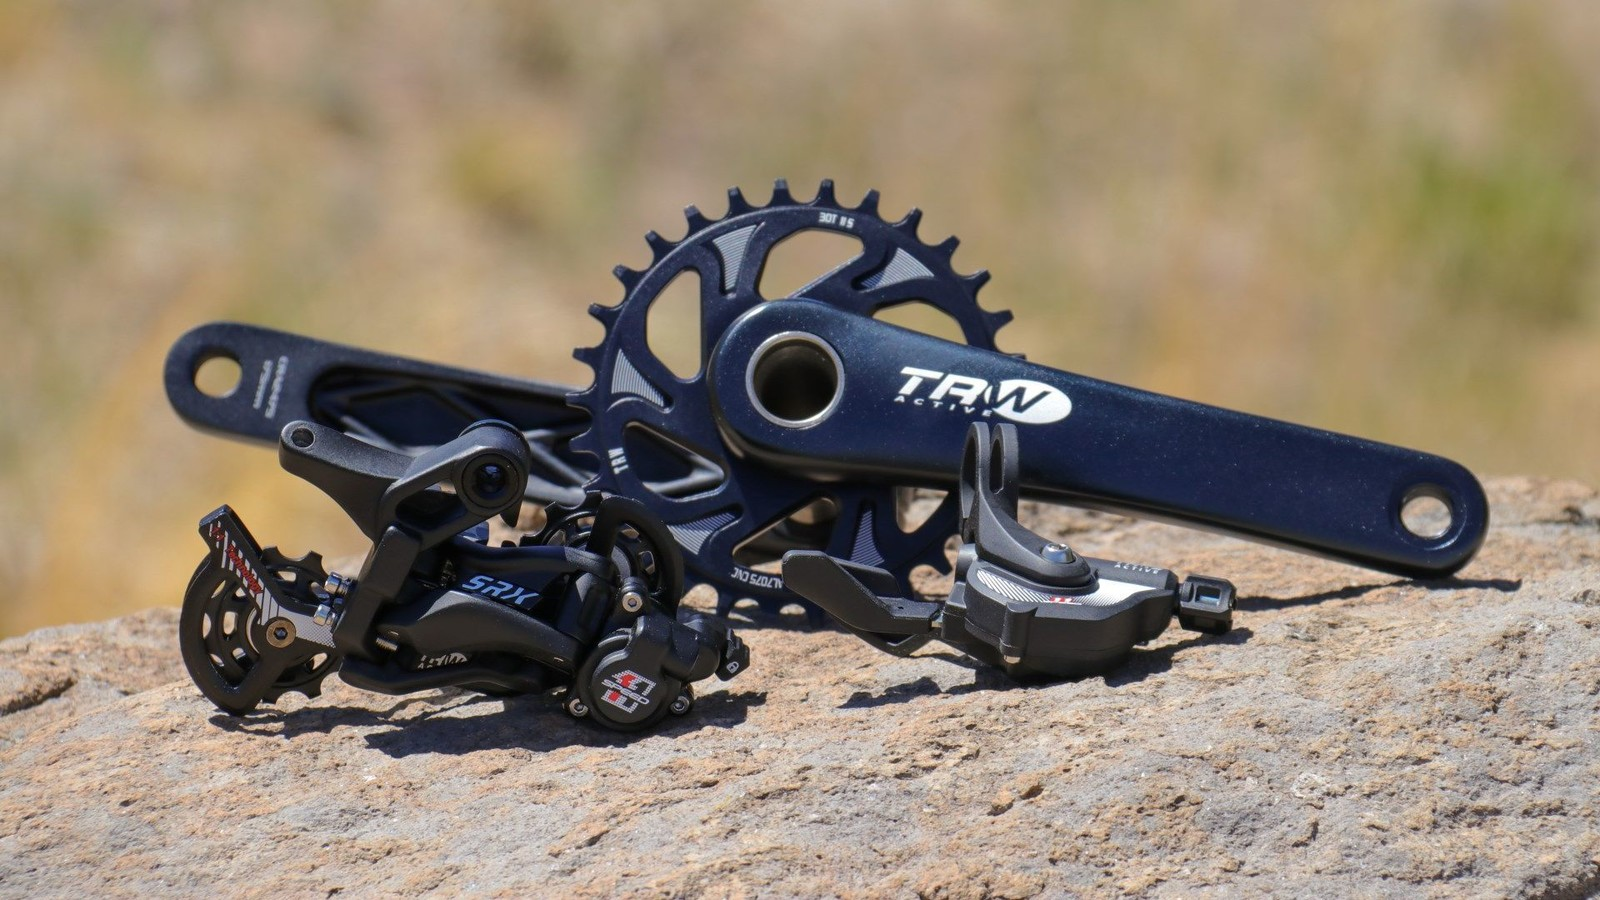 3bcace6e854 TRW Active Enters the Mountain Bike Drivetrain Market - Mountain ...